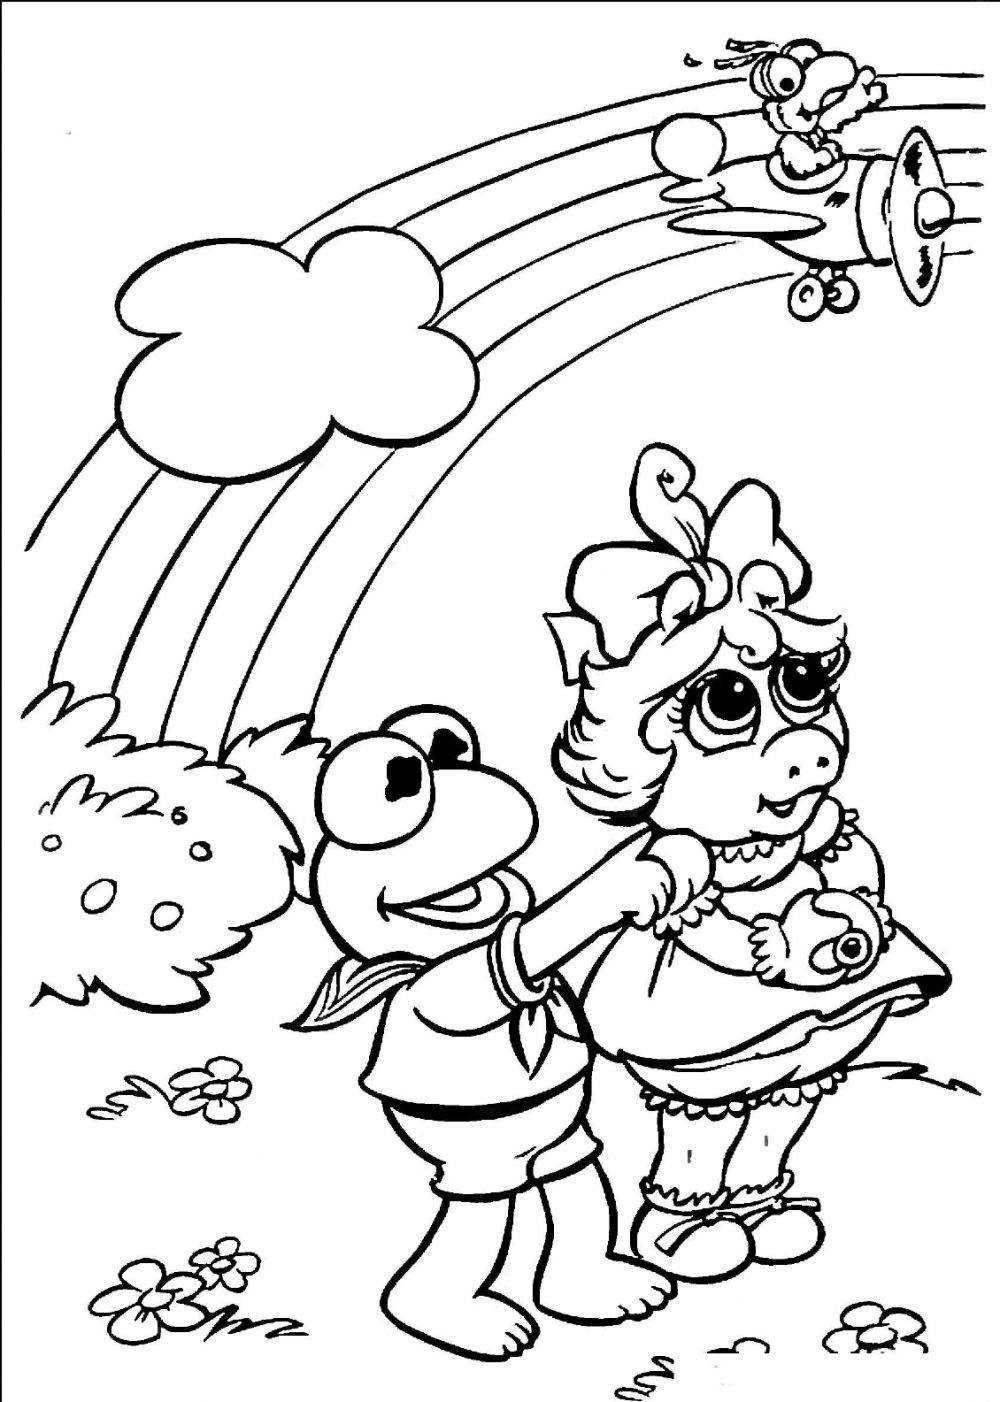 Rainbow magic coloring pages to download and print for free